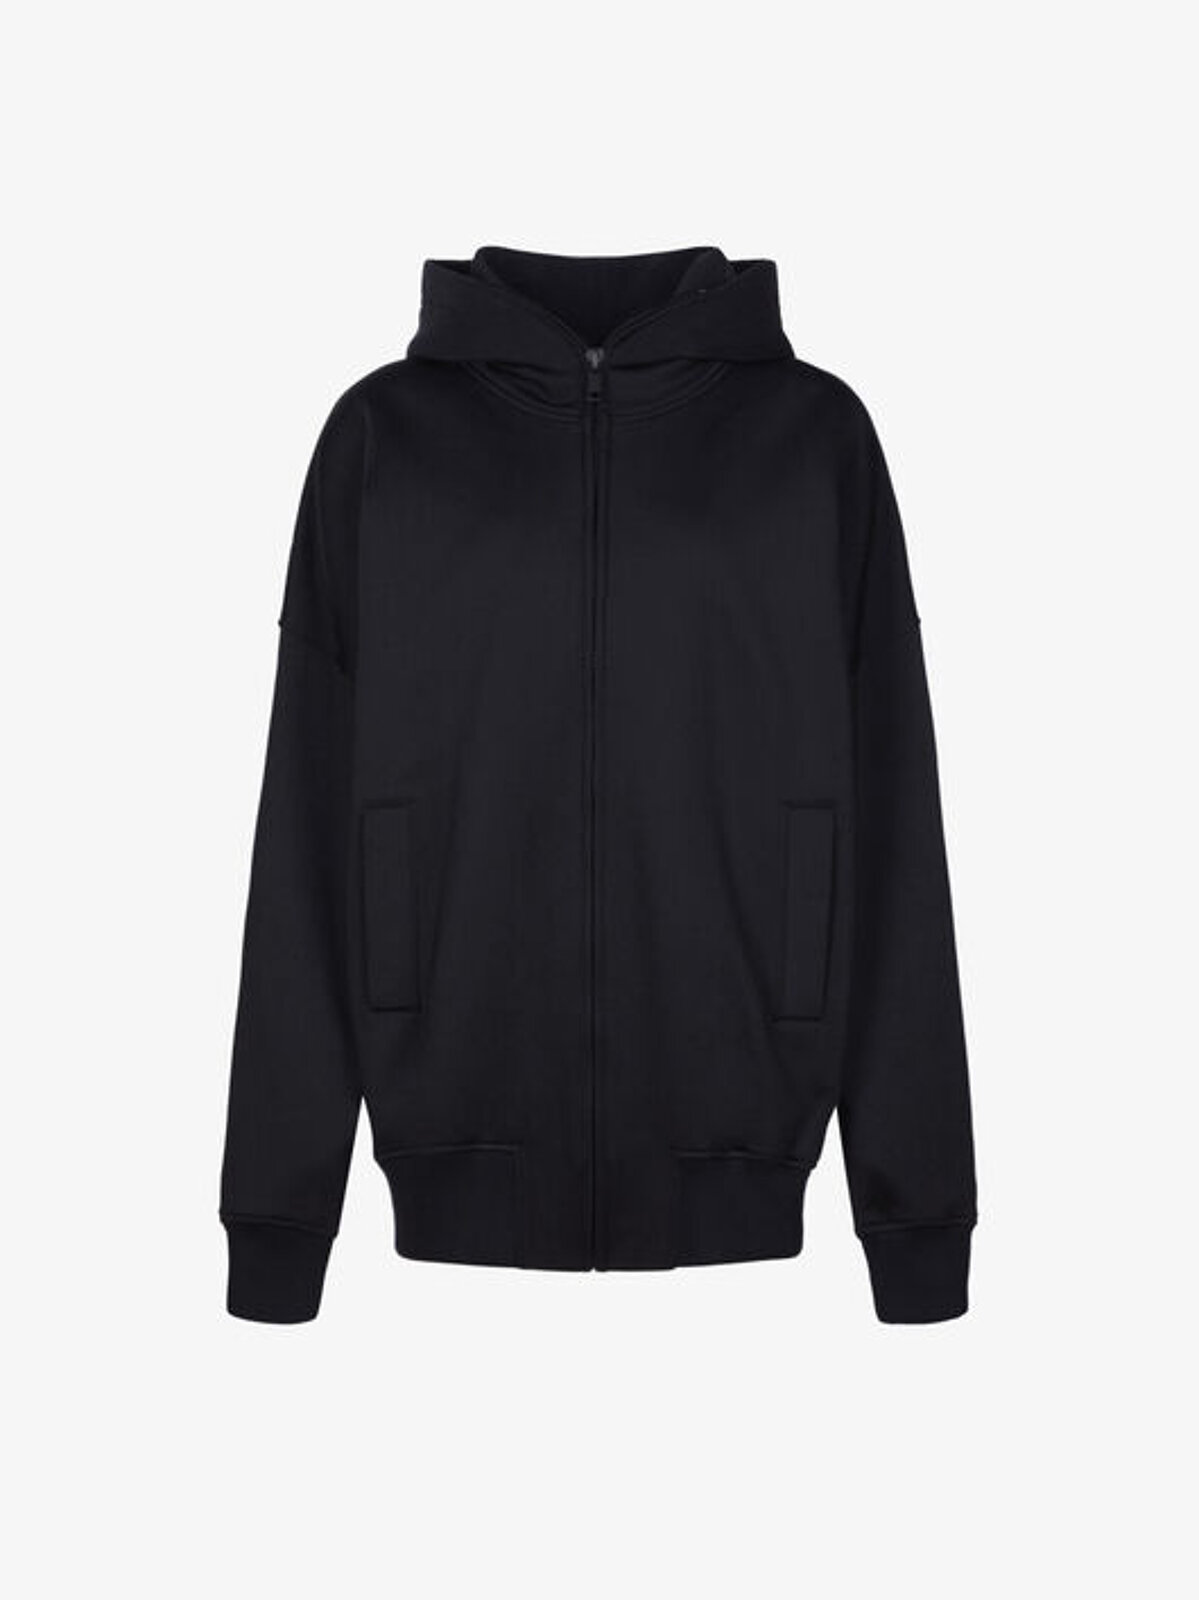 Givenchy Sweatshirt With Hood And Zip - Givenchy